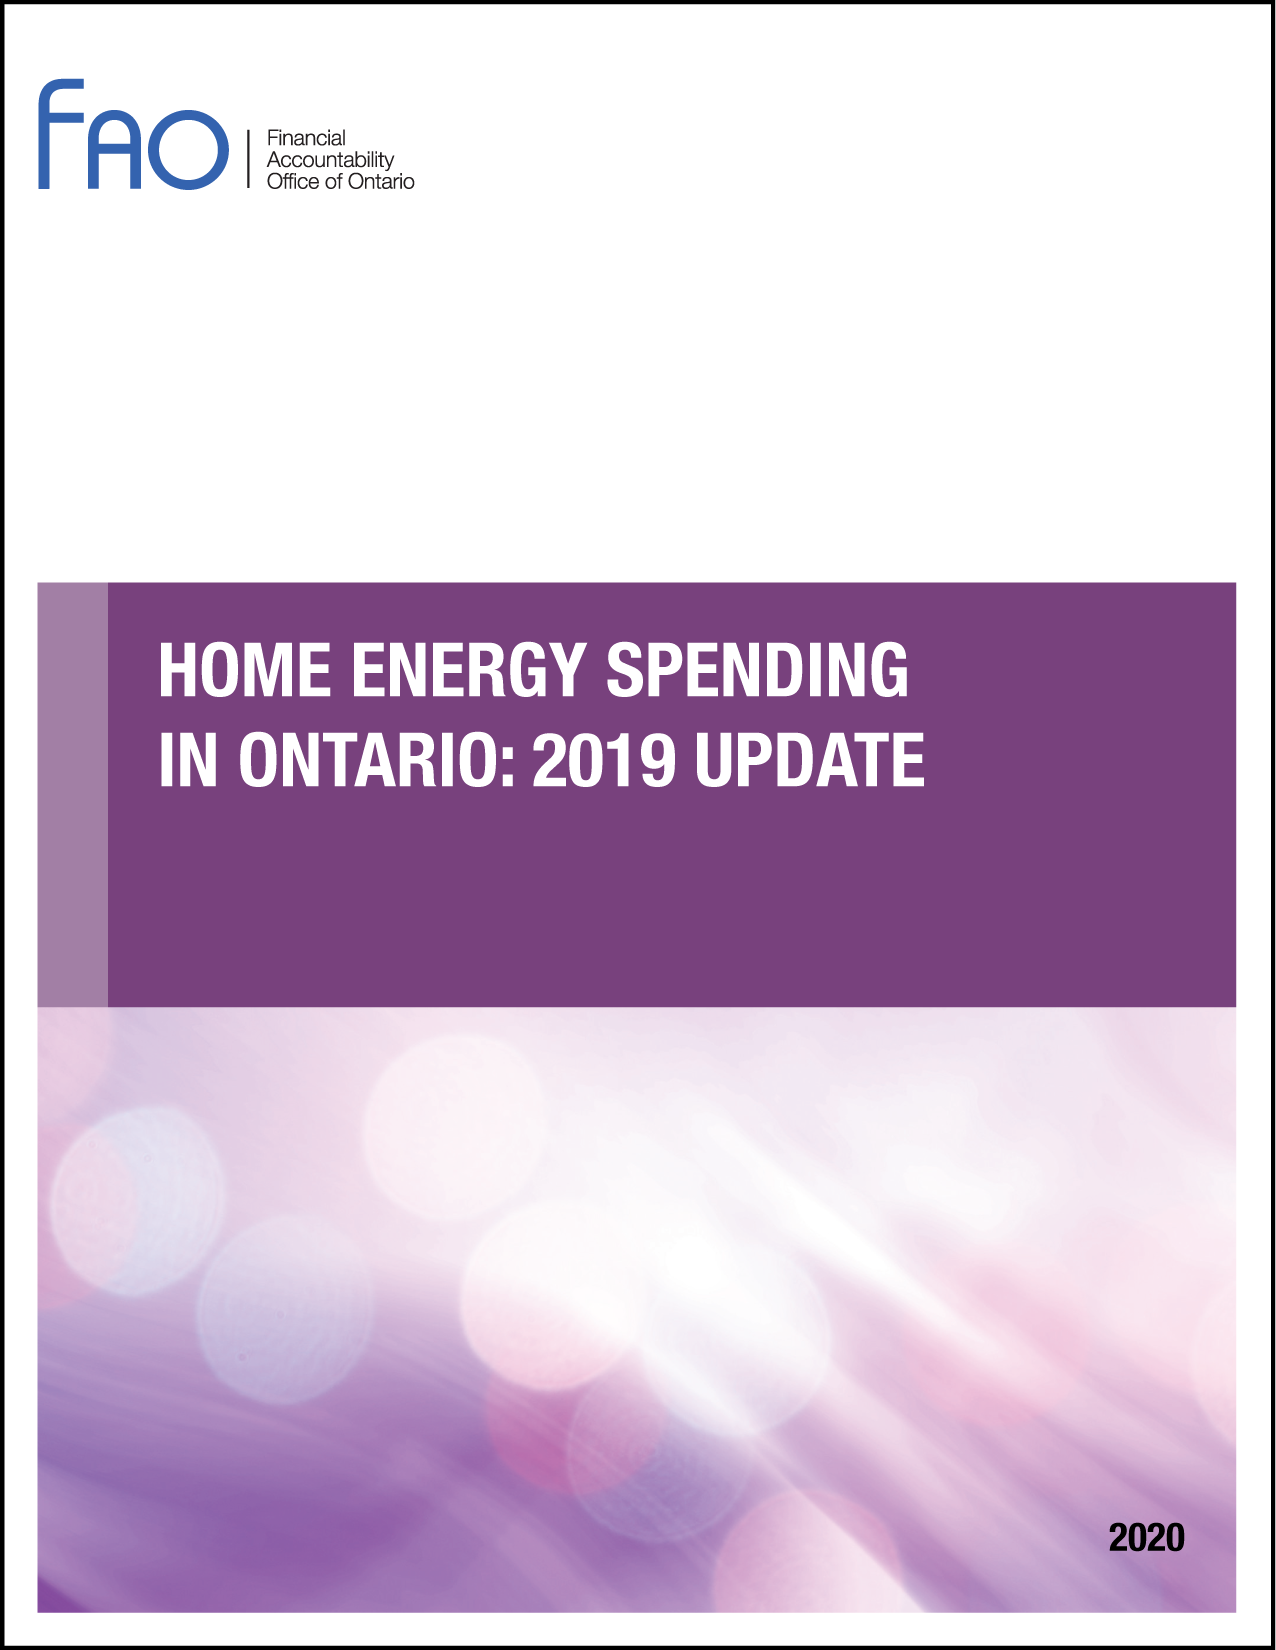 Home Energy Spending in Ontario: 2019 Update